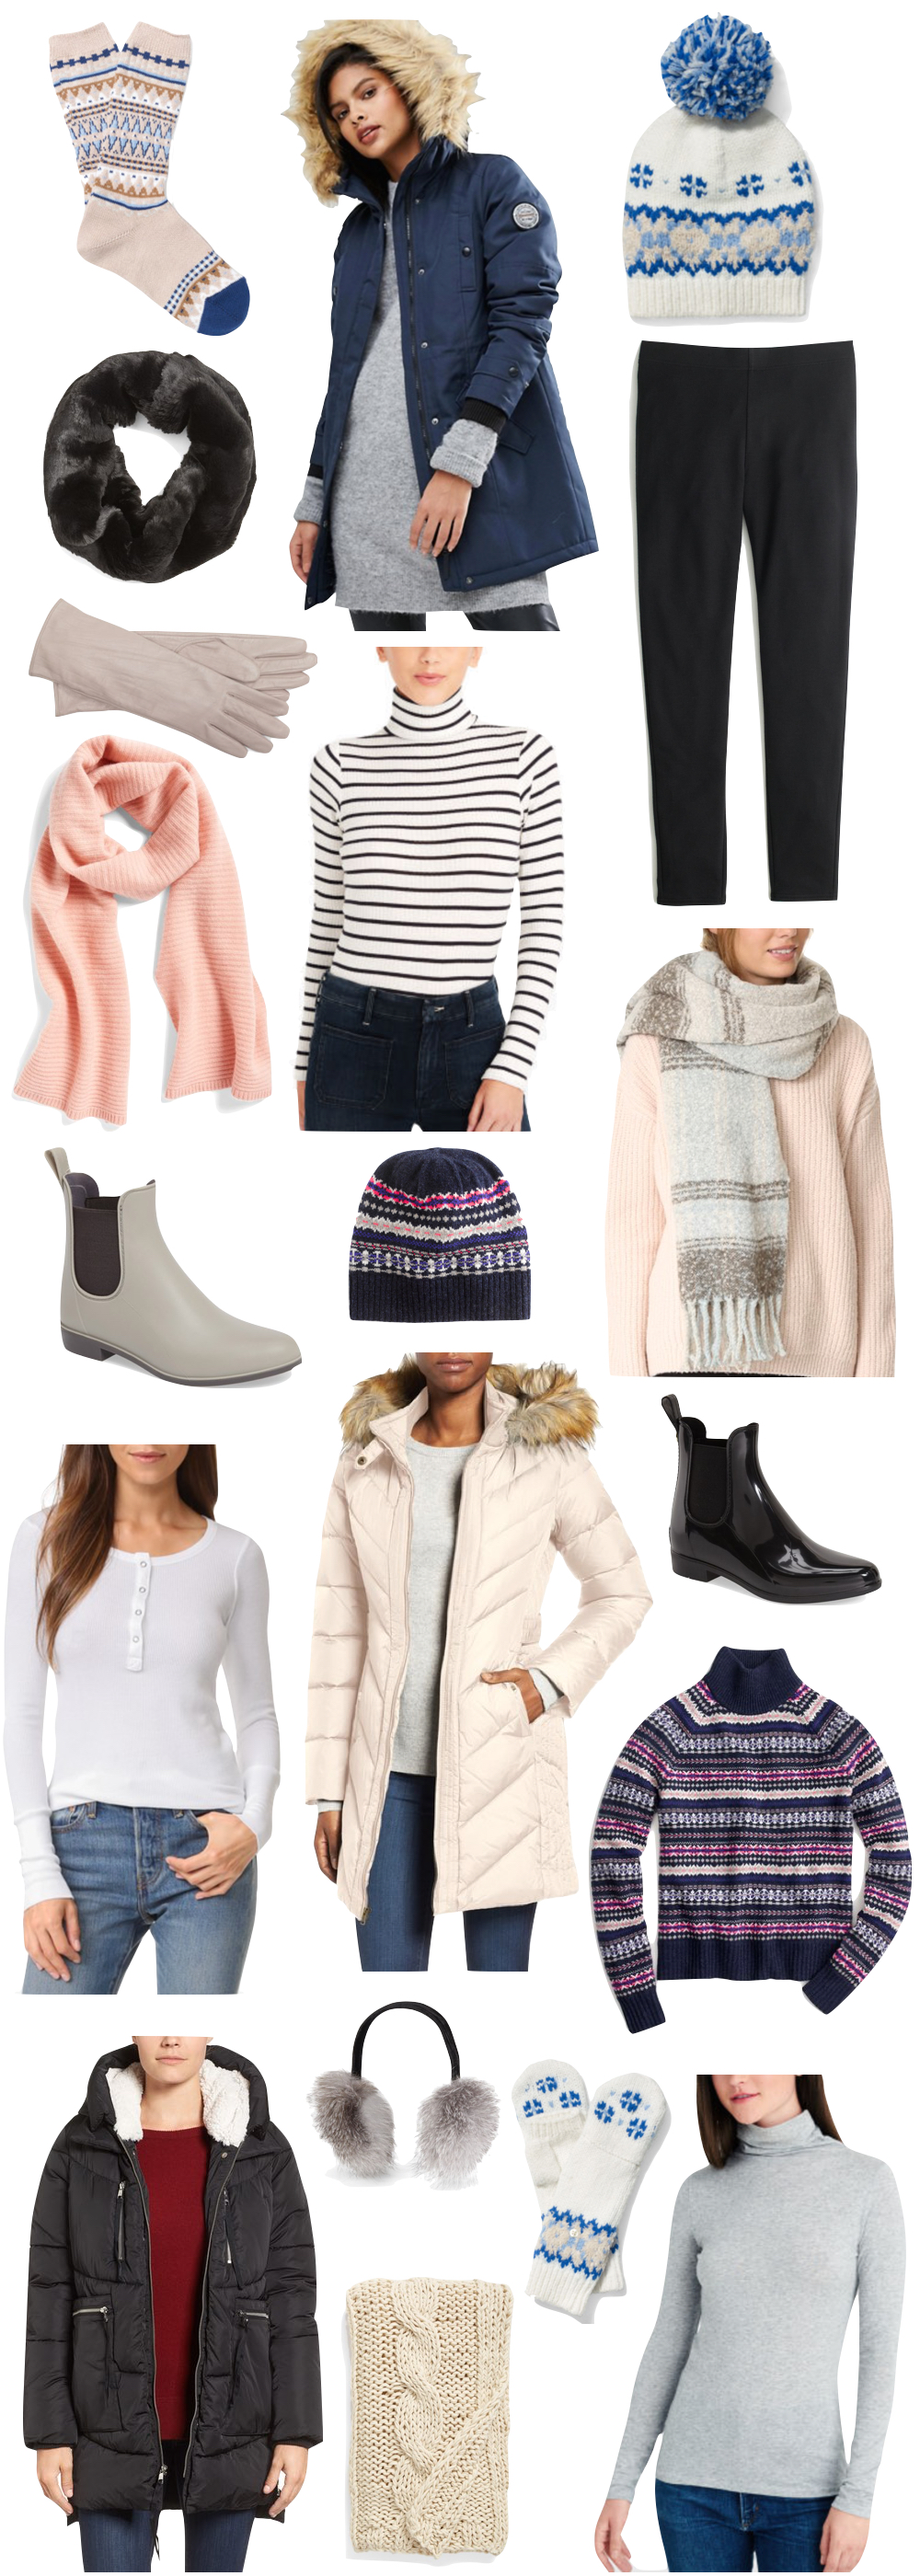 Kelly's Chic Under $100 - Affordable Snow Bunny Gear | The Stripe